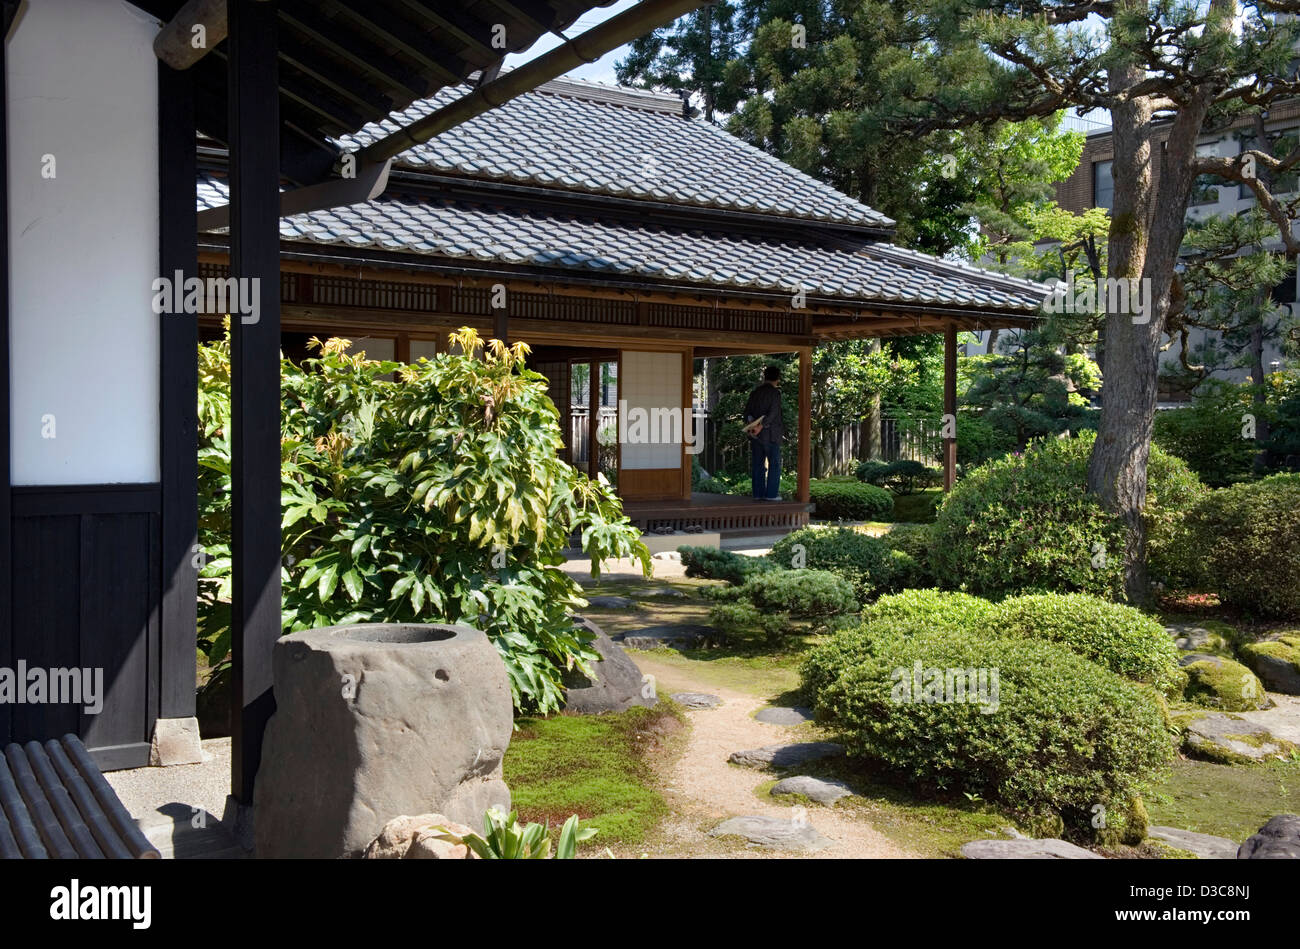 the samurais garden essay The samurai's garden essays are academic essays for citation these papers were written primarily by students and provide critical analysis of the samurai's.